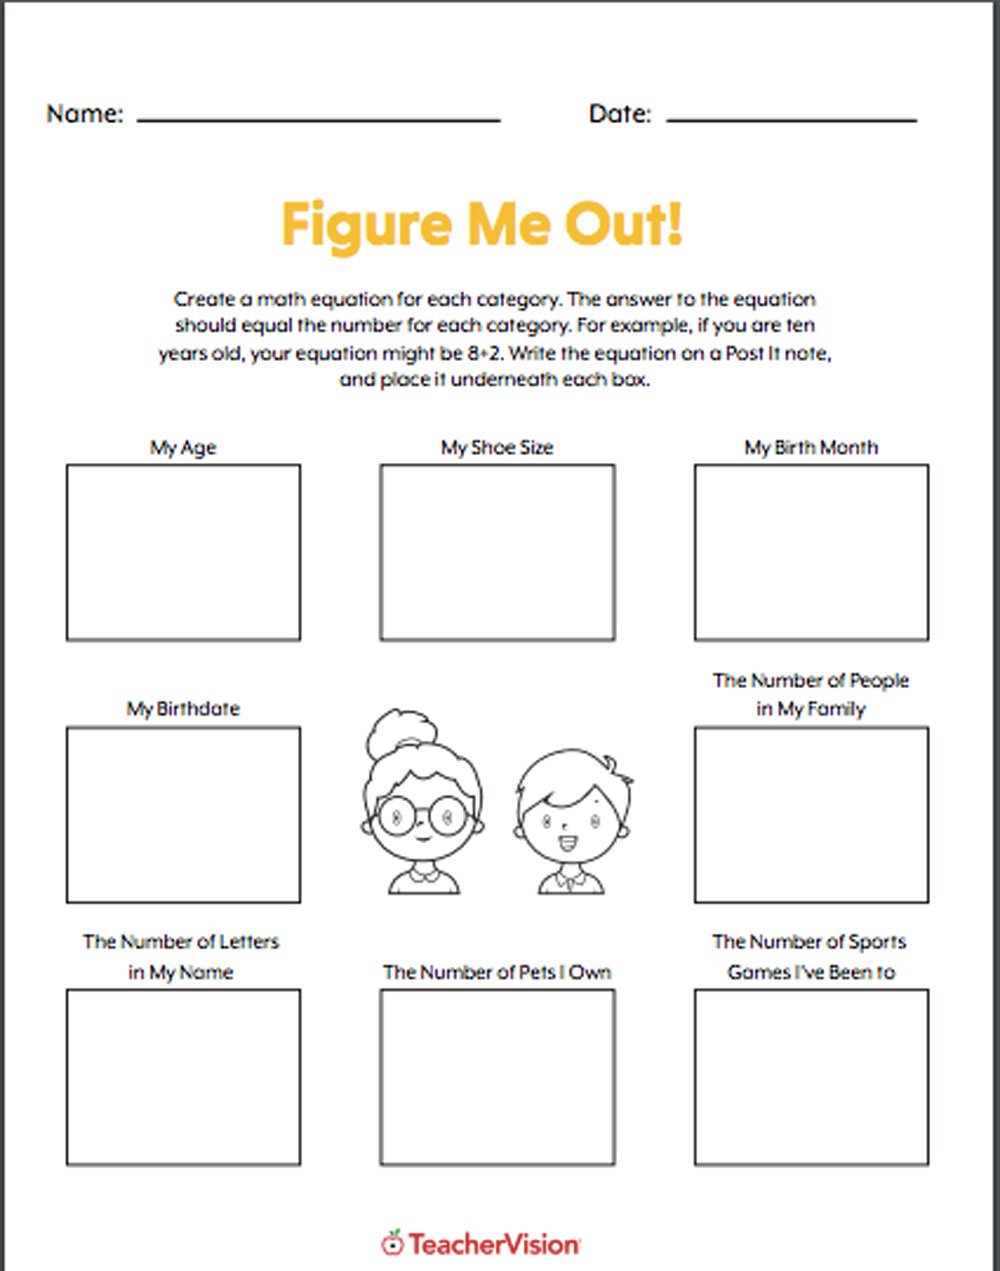 hight resolution of Figure Me Out Icebreaker - TeacherVision